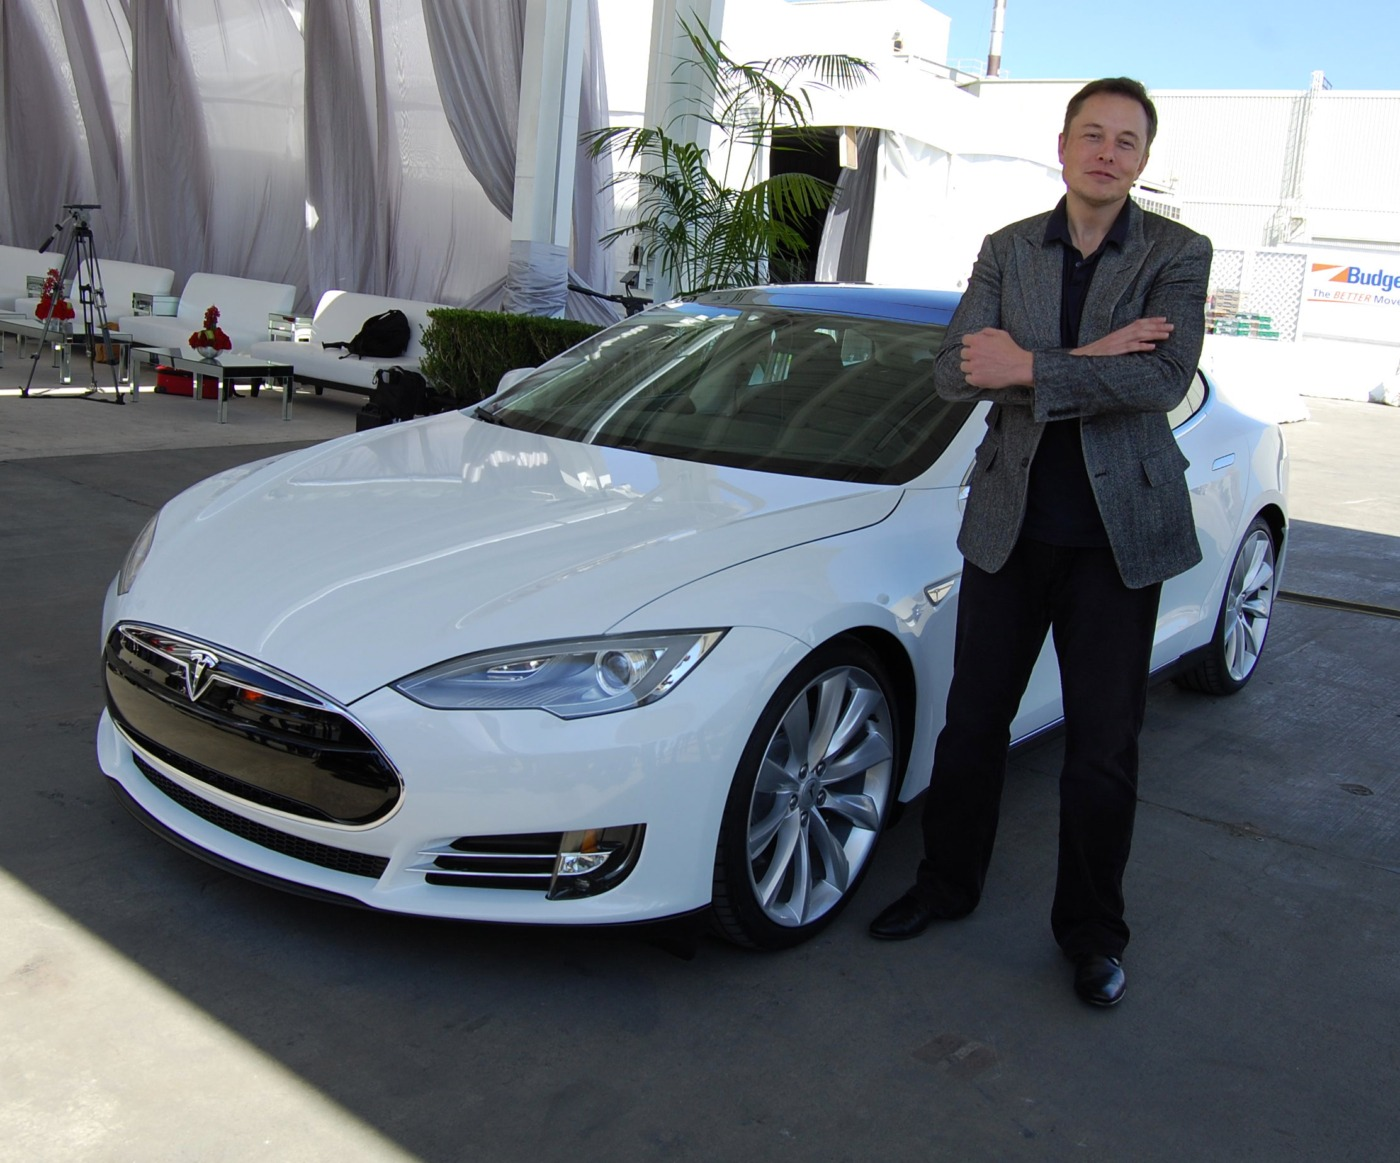 Elon Musk by a car / Image: Wikimedia Commons